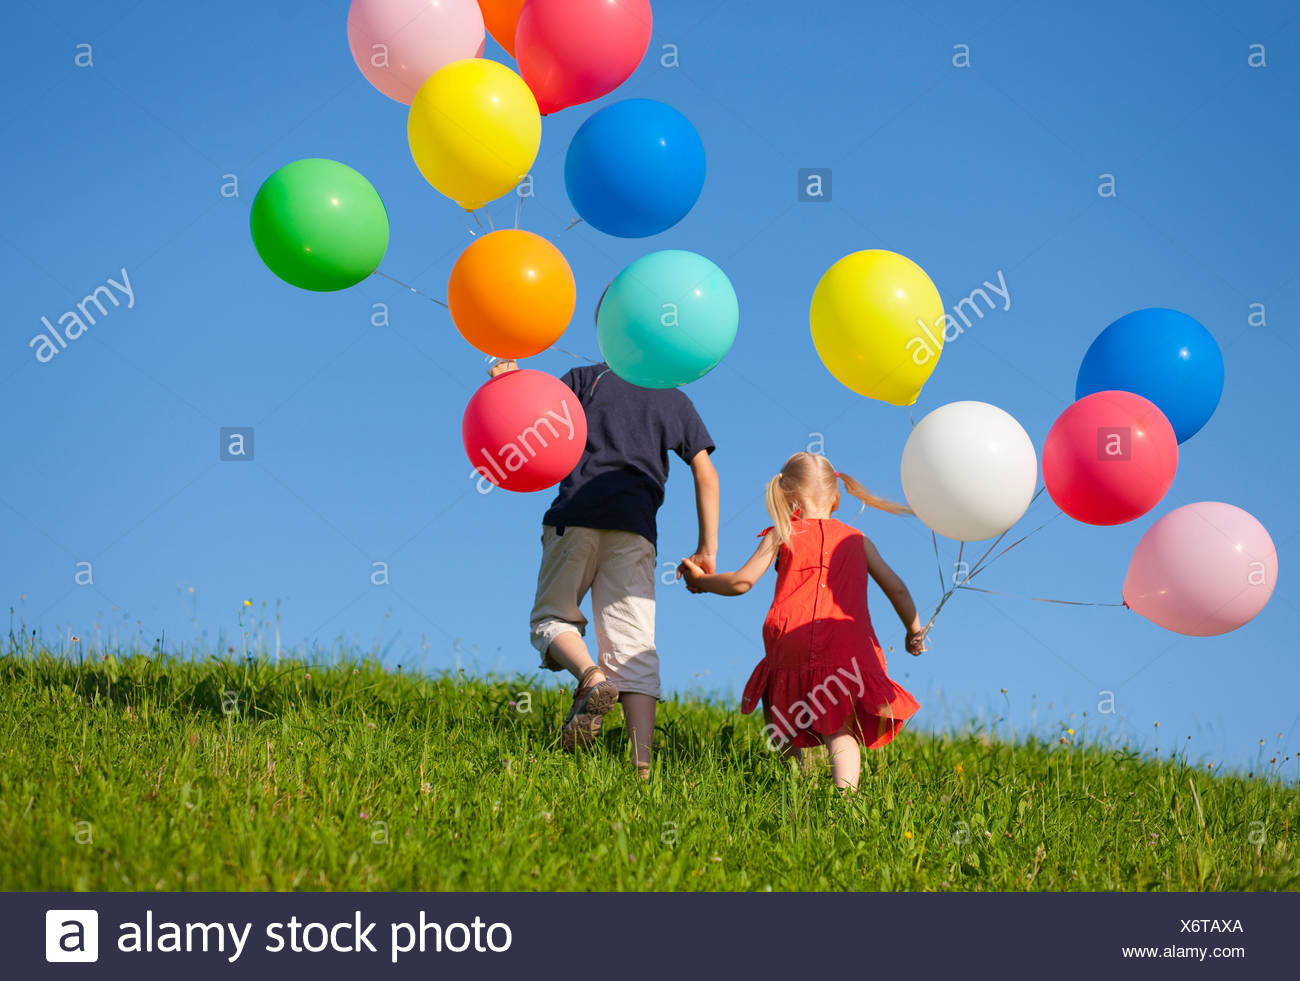 Children with colorful balloons in grass - Stock Image